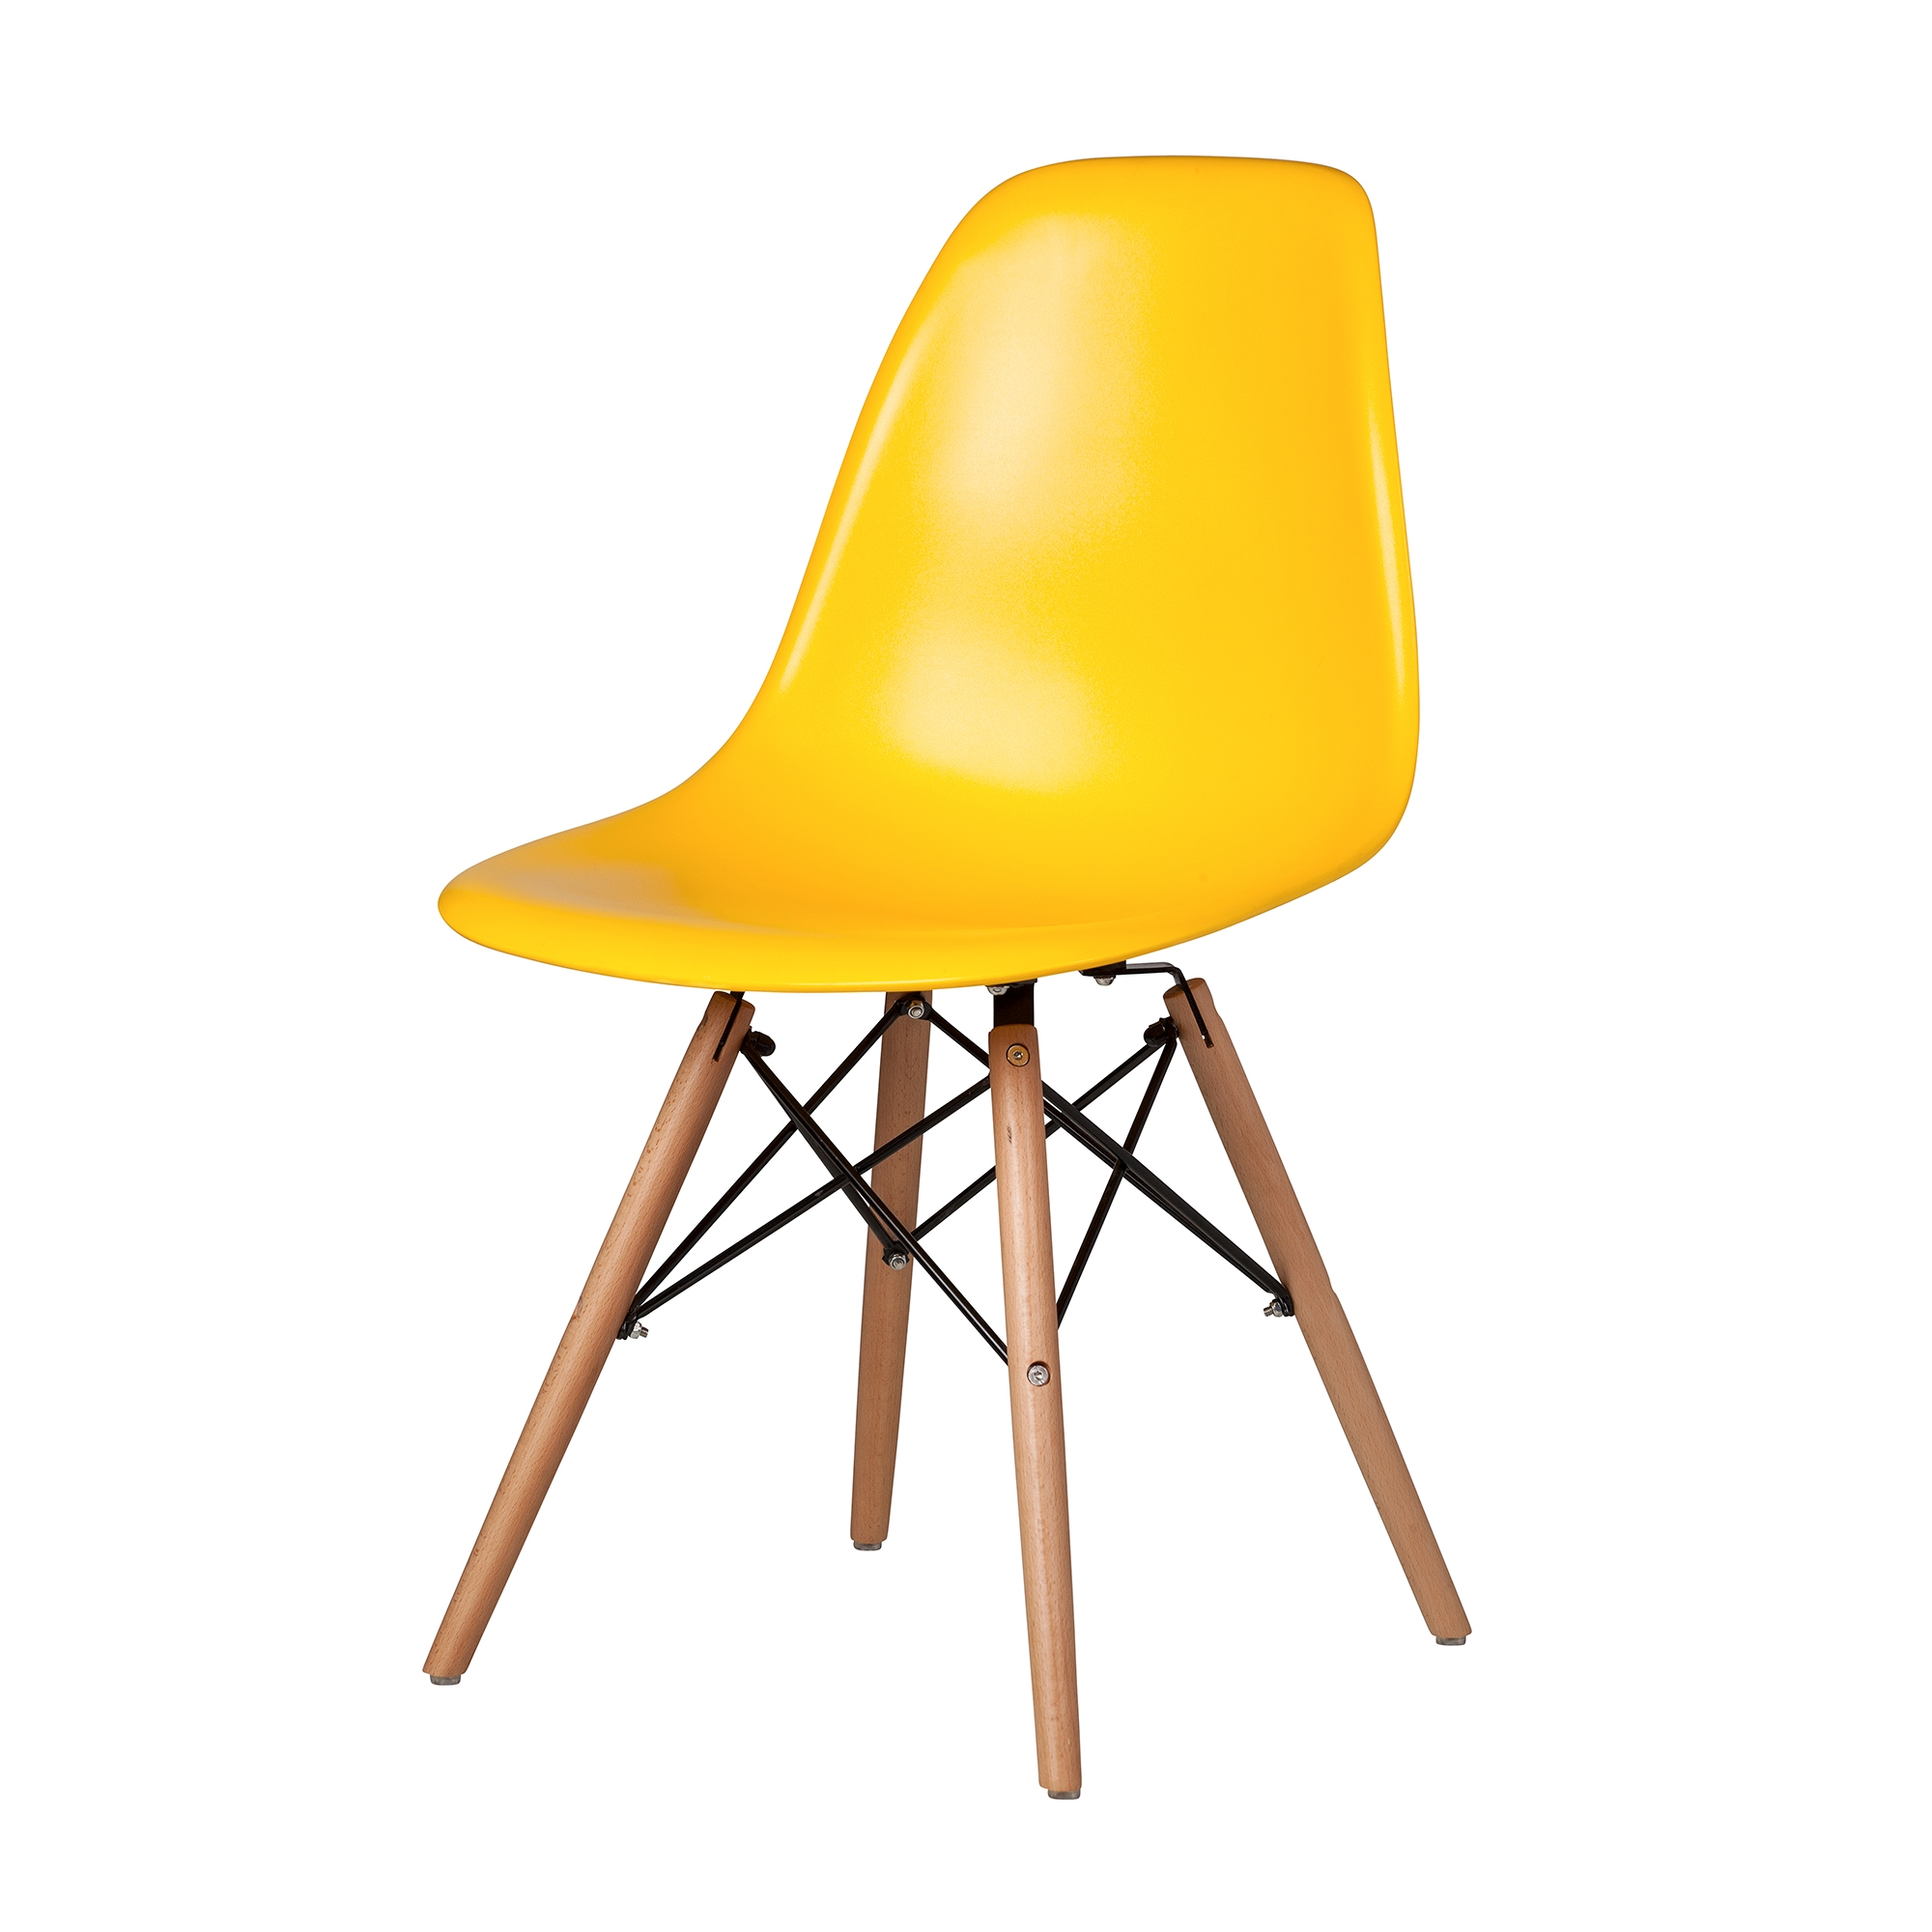 mid century modern plastic chairs walmart folding and tables eames style chair in yellow with dowel legs the khazana home charles dsw side